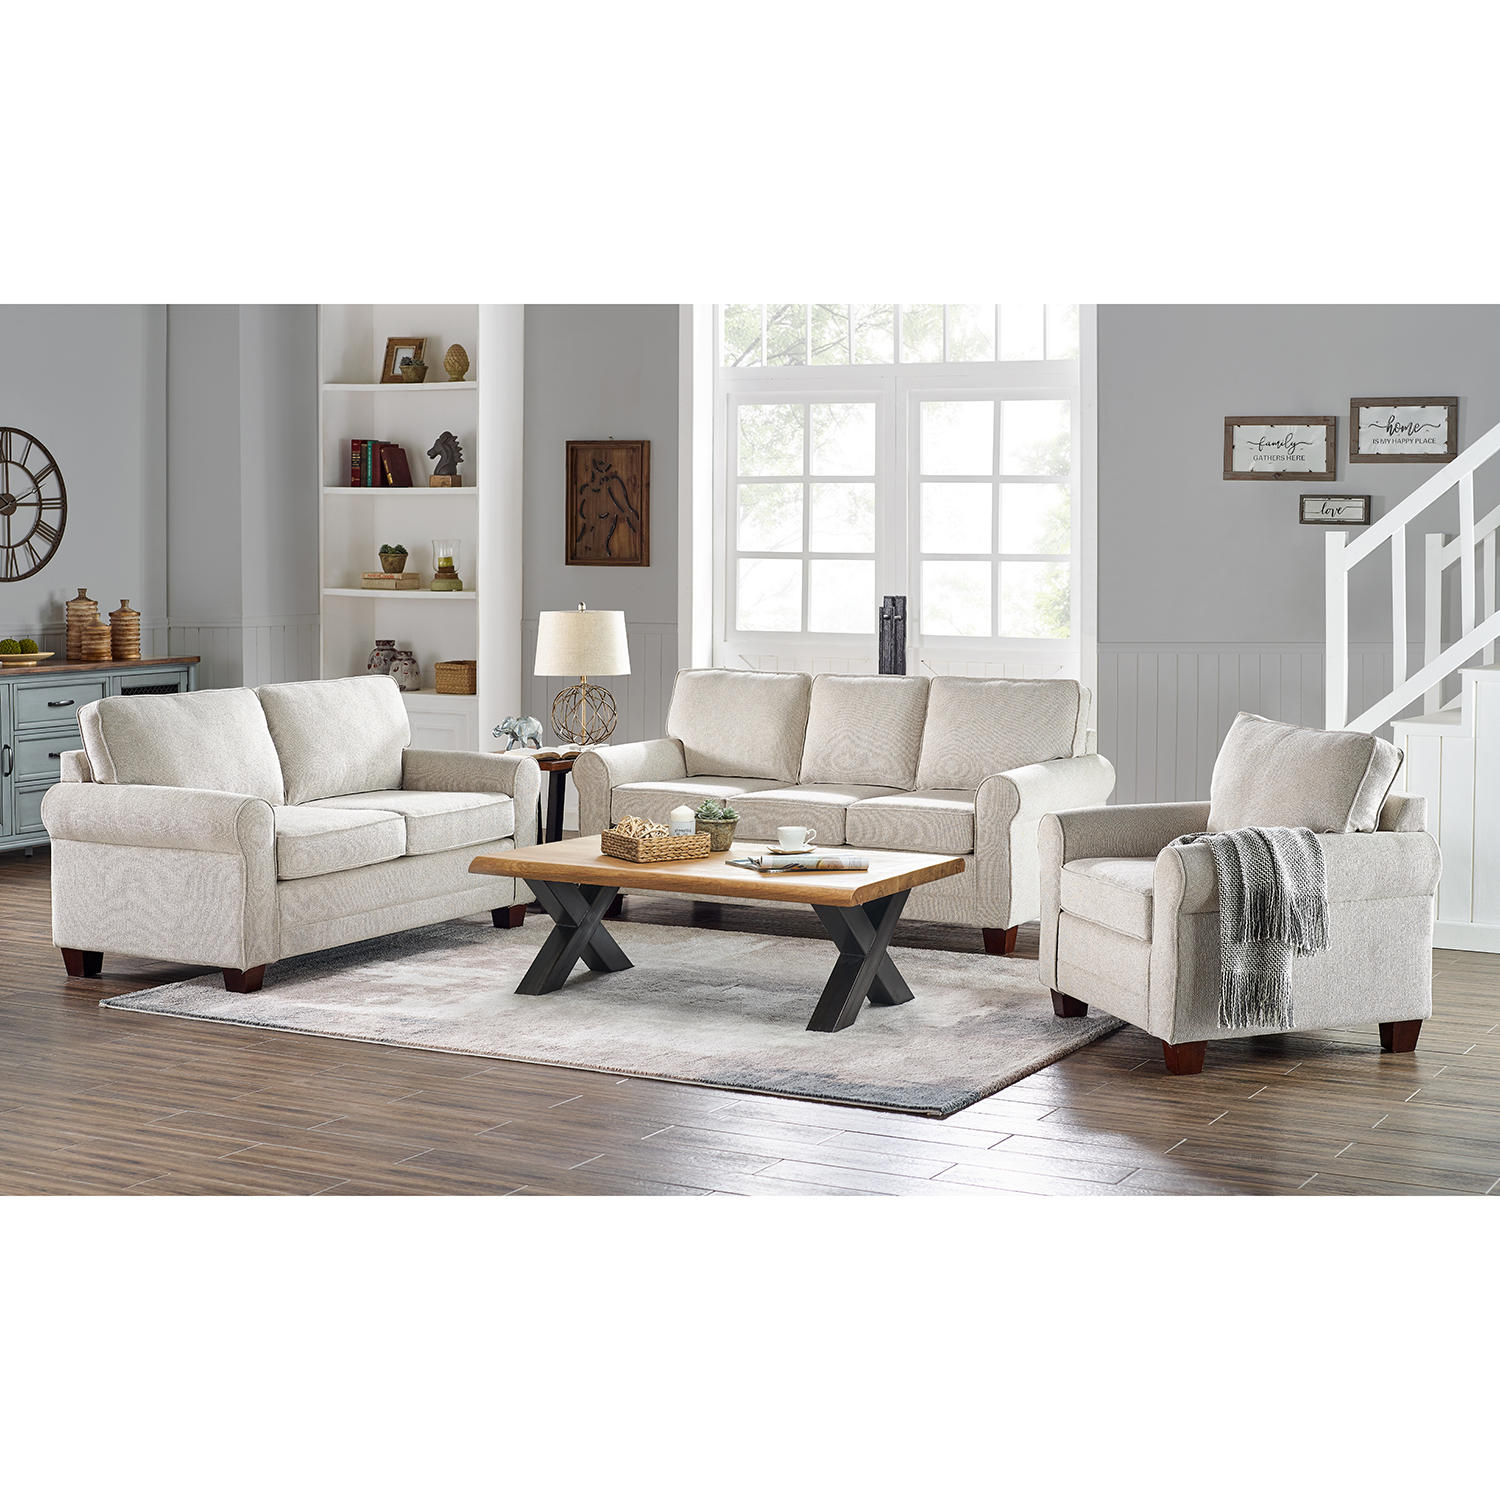 Home Meridian Loveseat & Chair Collection Adaline Sofa